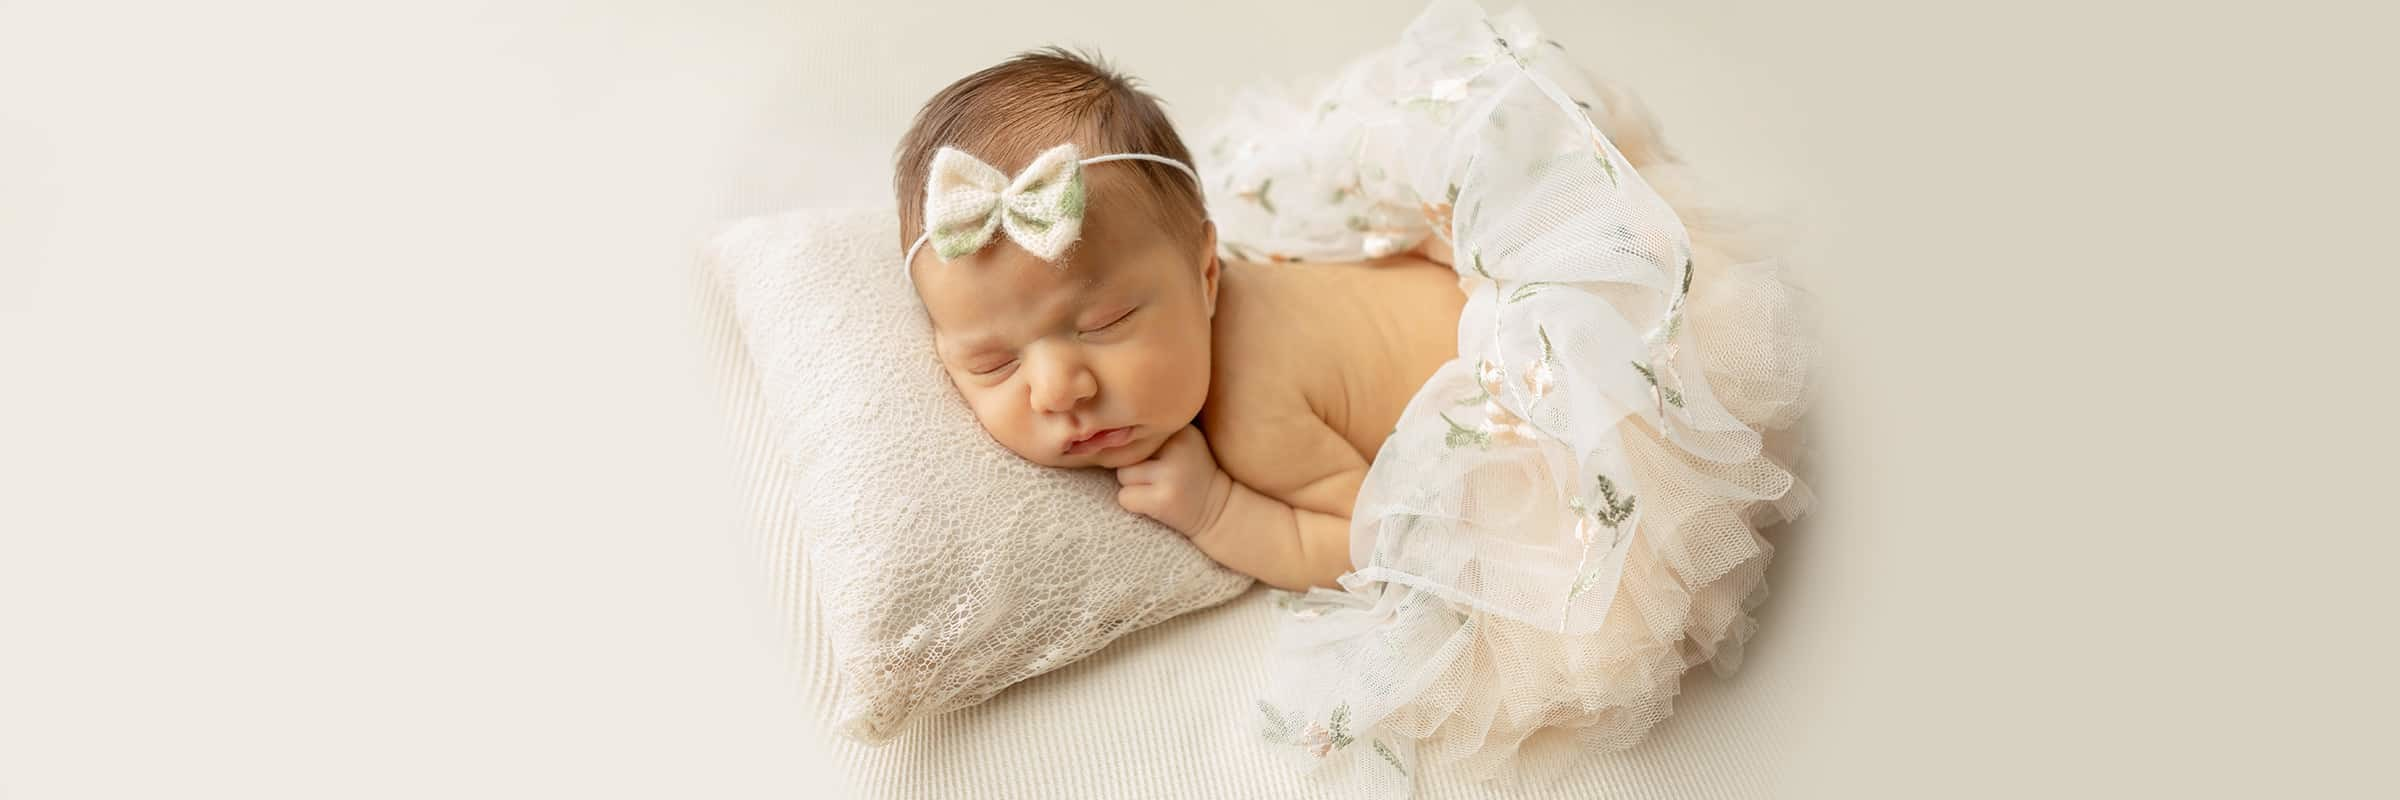 photo of newborn baby girl wearing floral tutu